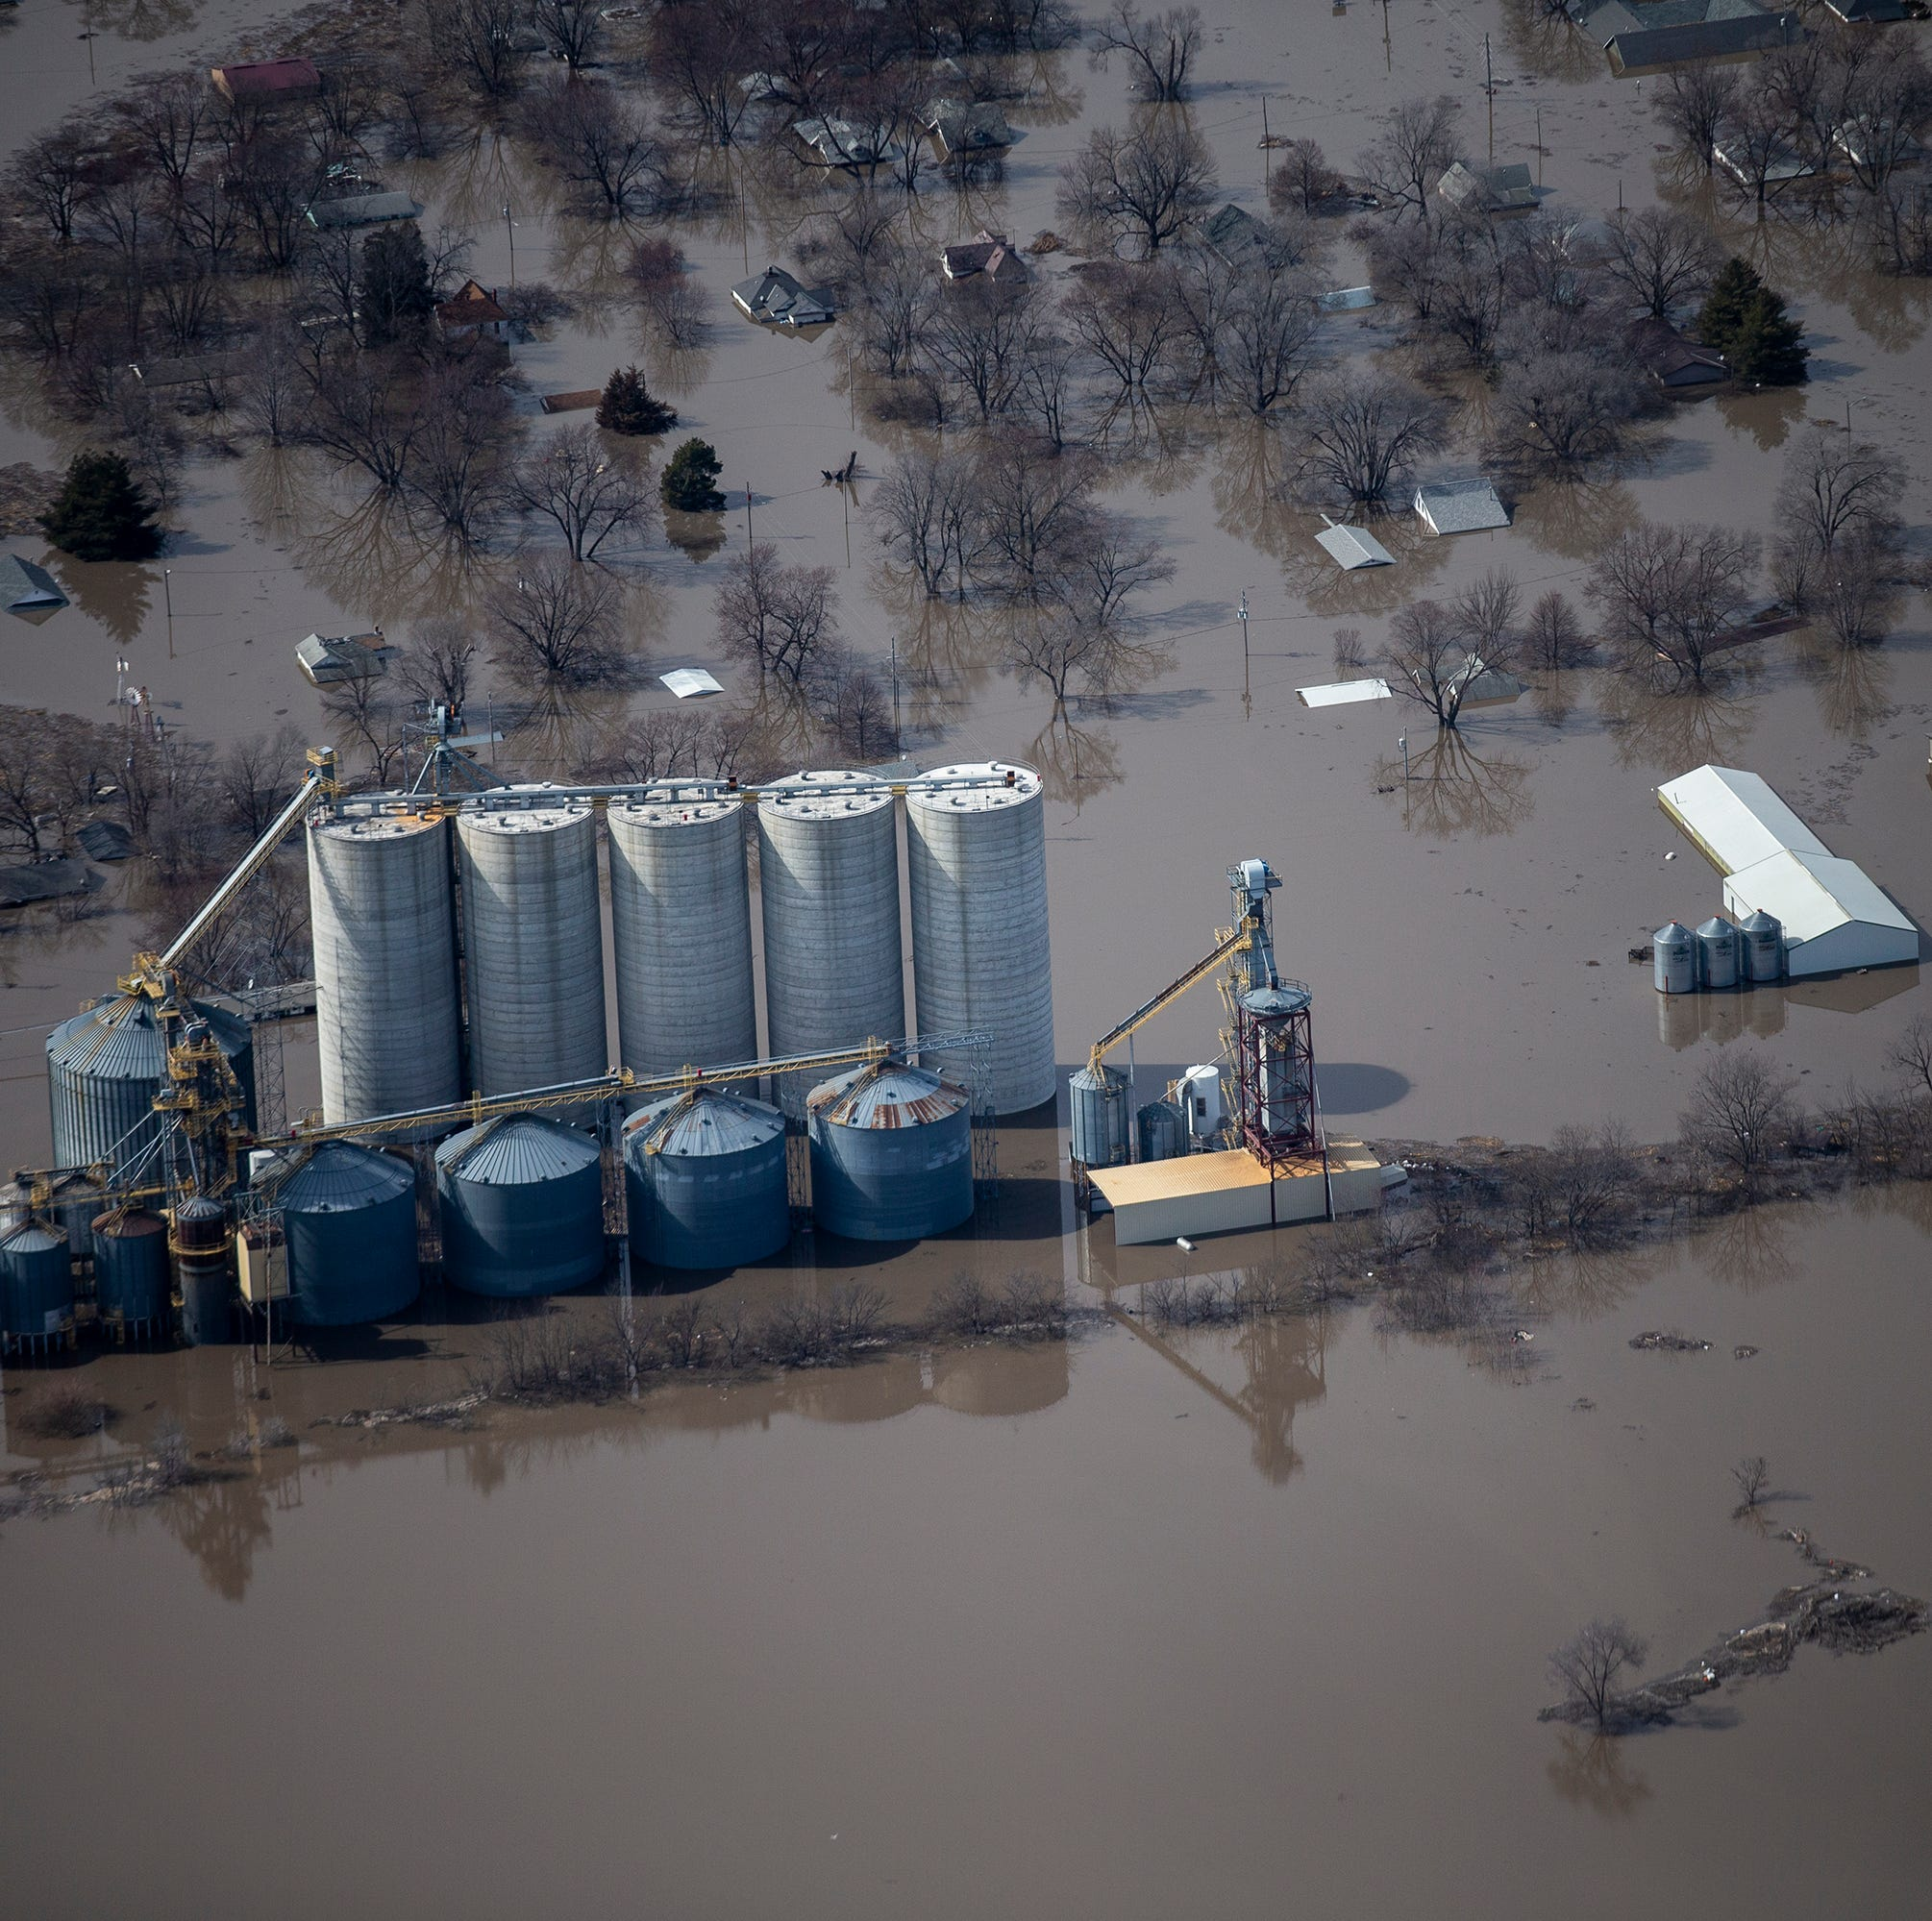 Live drone video of flooding along the Missouri River